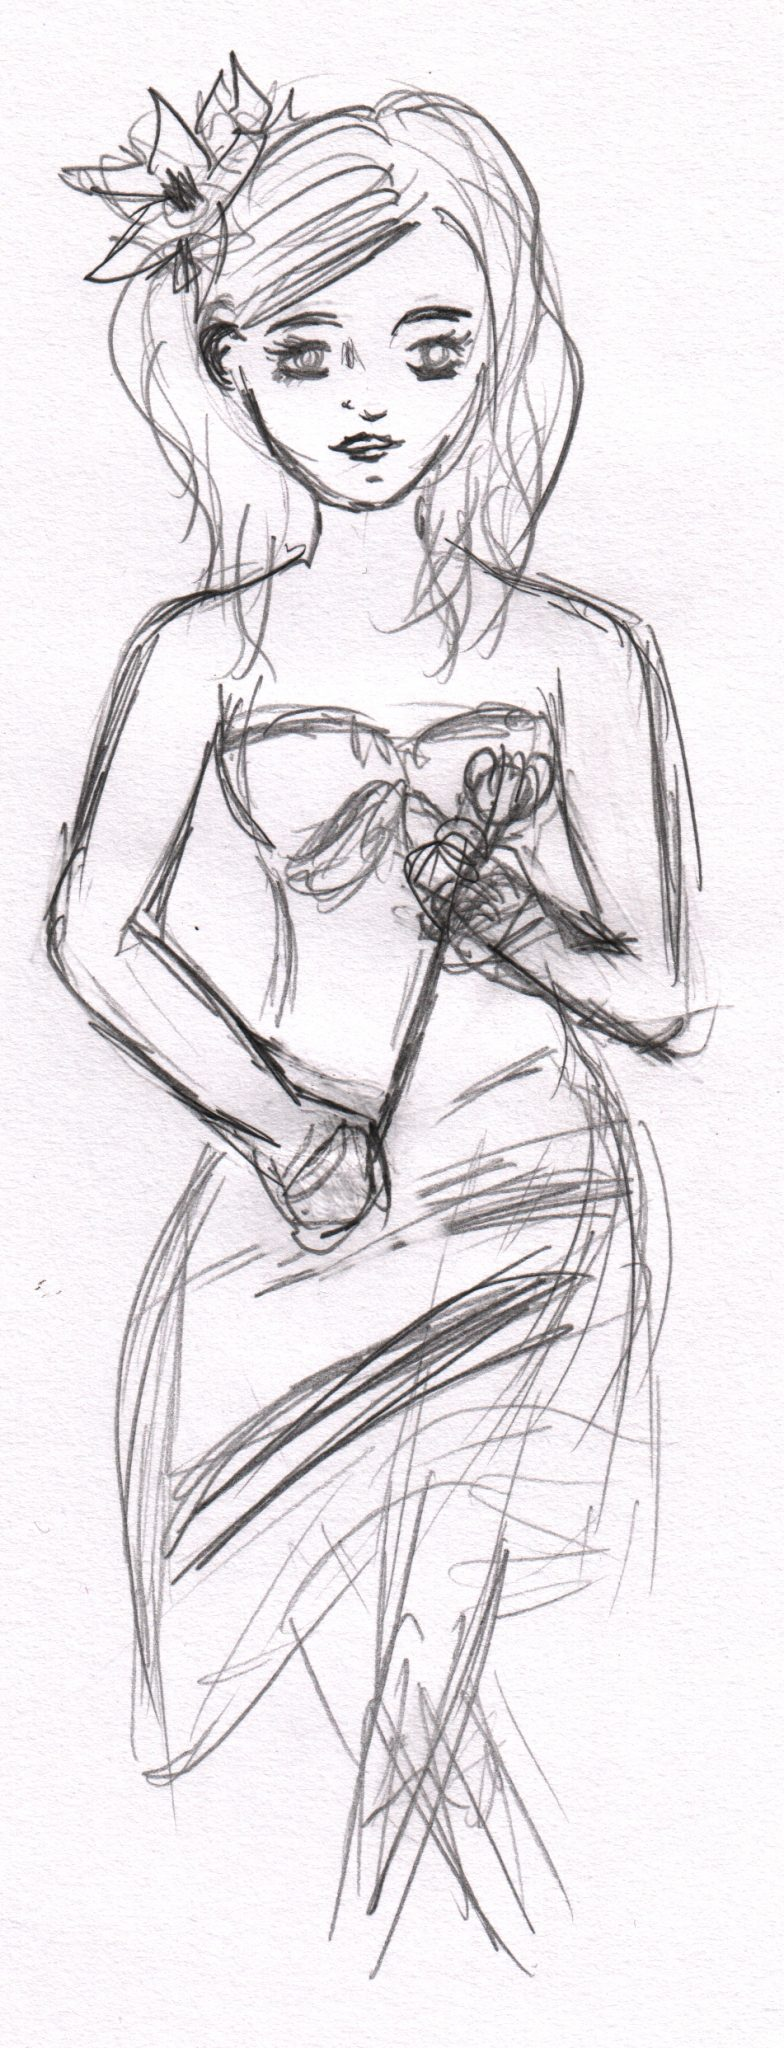 A sketch of a woman sat holding a rose, there is also a flower in her hair.